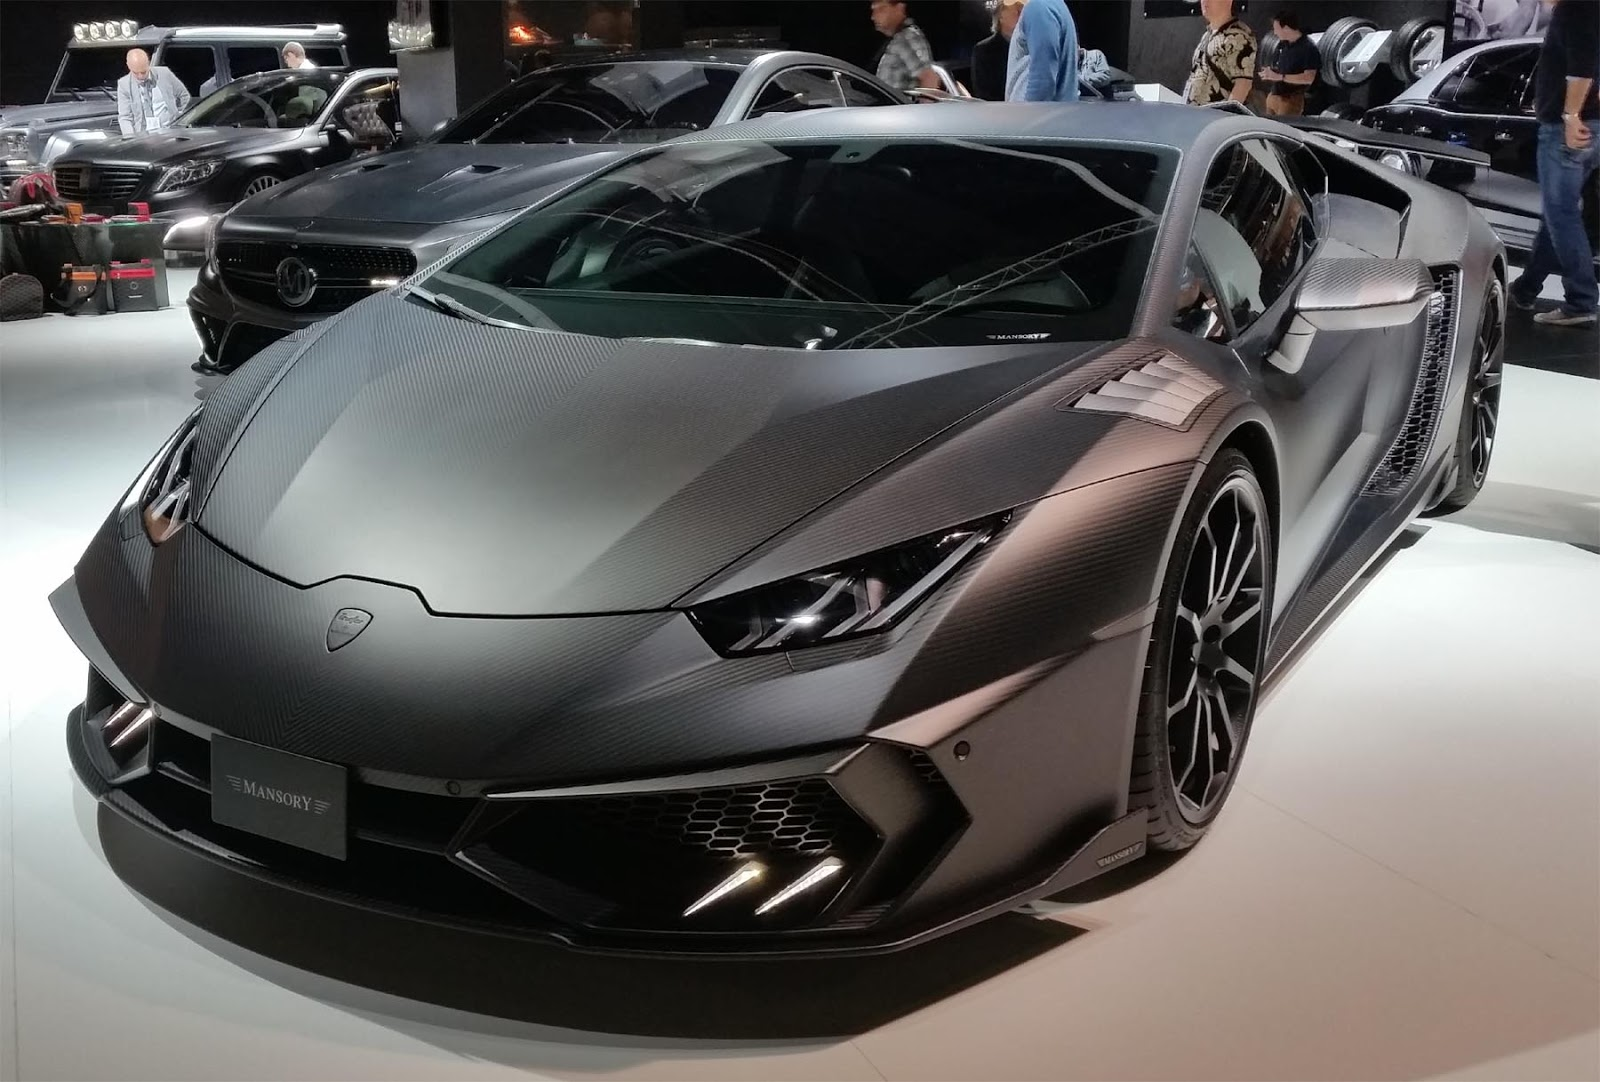 A True Master In Creating Wild Creations With Carbon Fibre Is The Tuning  Company U0027Mansoryu0027. Well Known Automotive Trade Fairs Like The Geneva And  Frankfurt ...